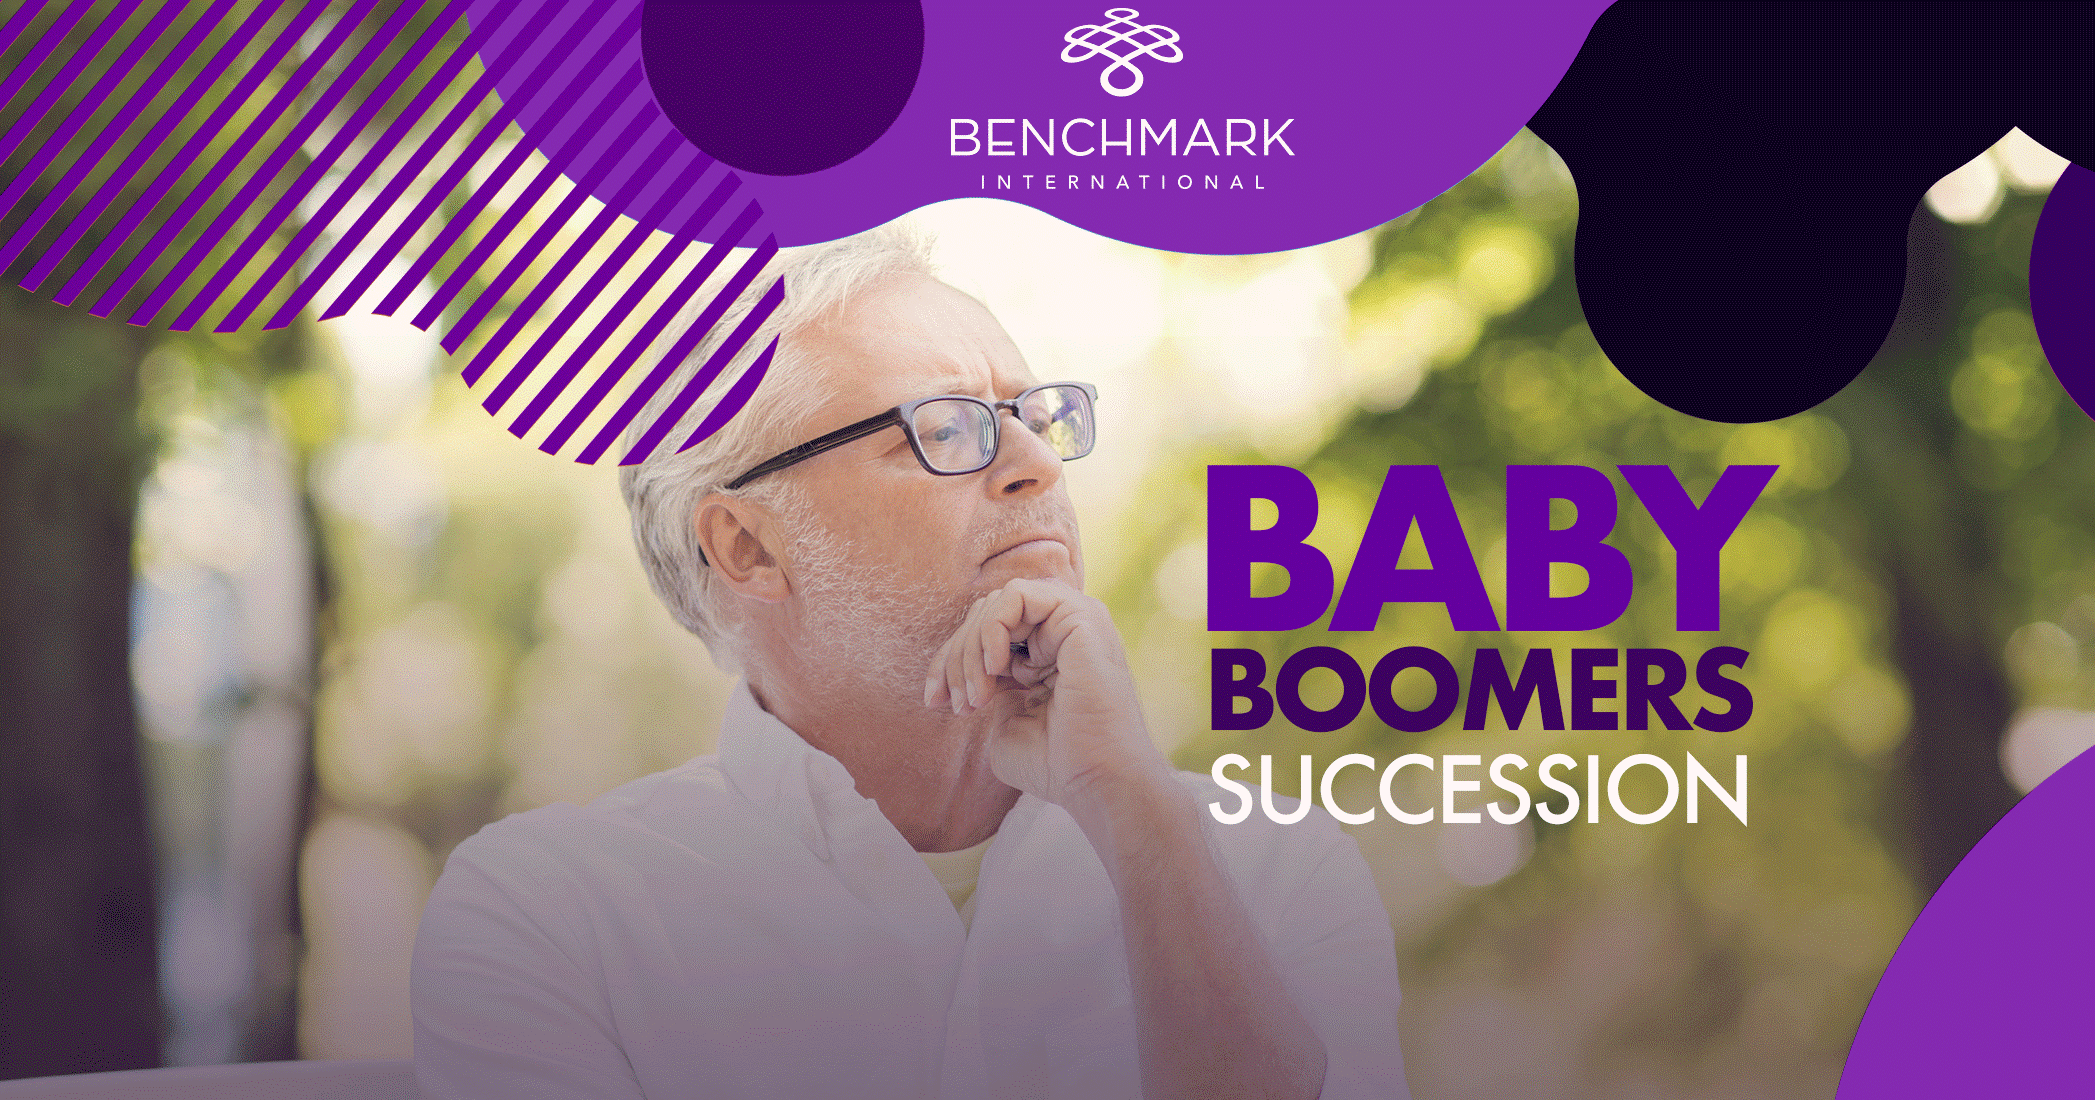 What to do With Your Business to Make it More Appealing in Light of the Baby Boomers' Crisis